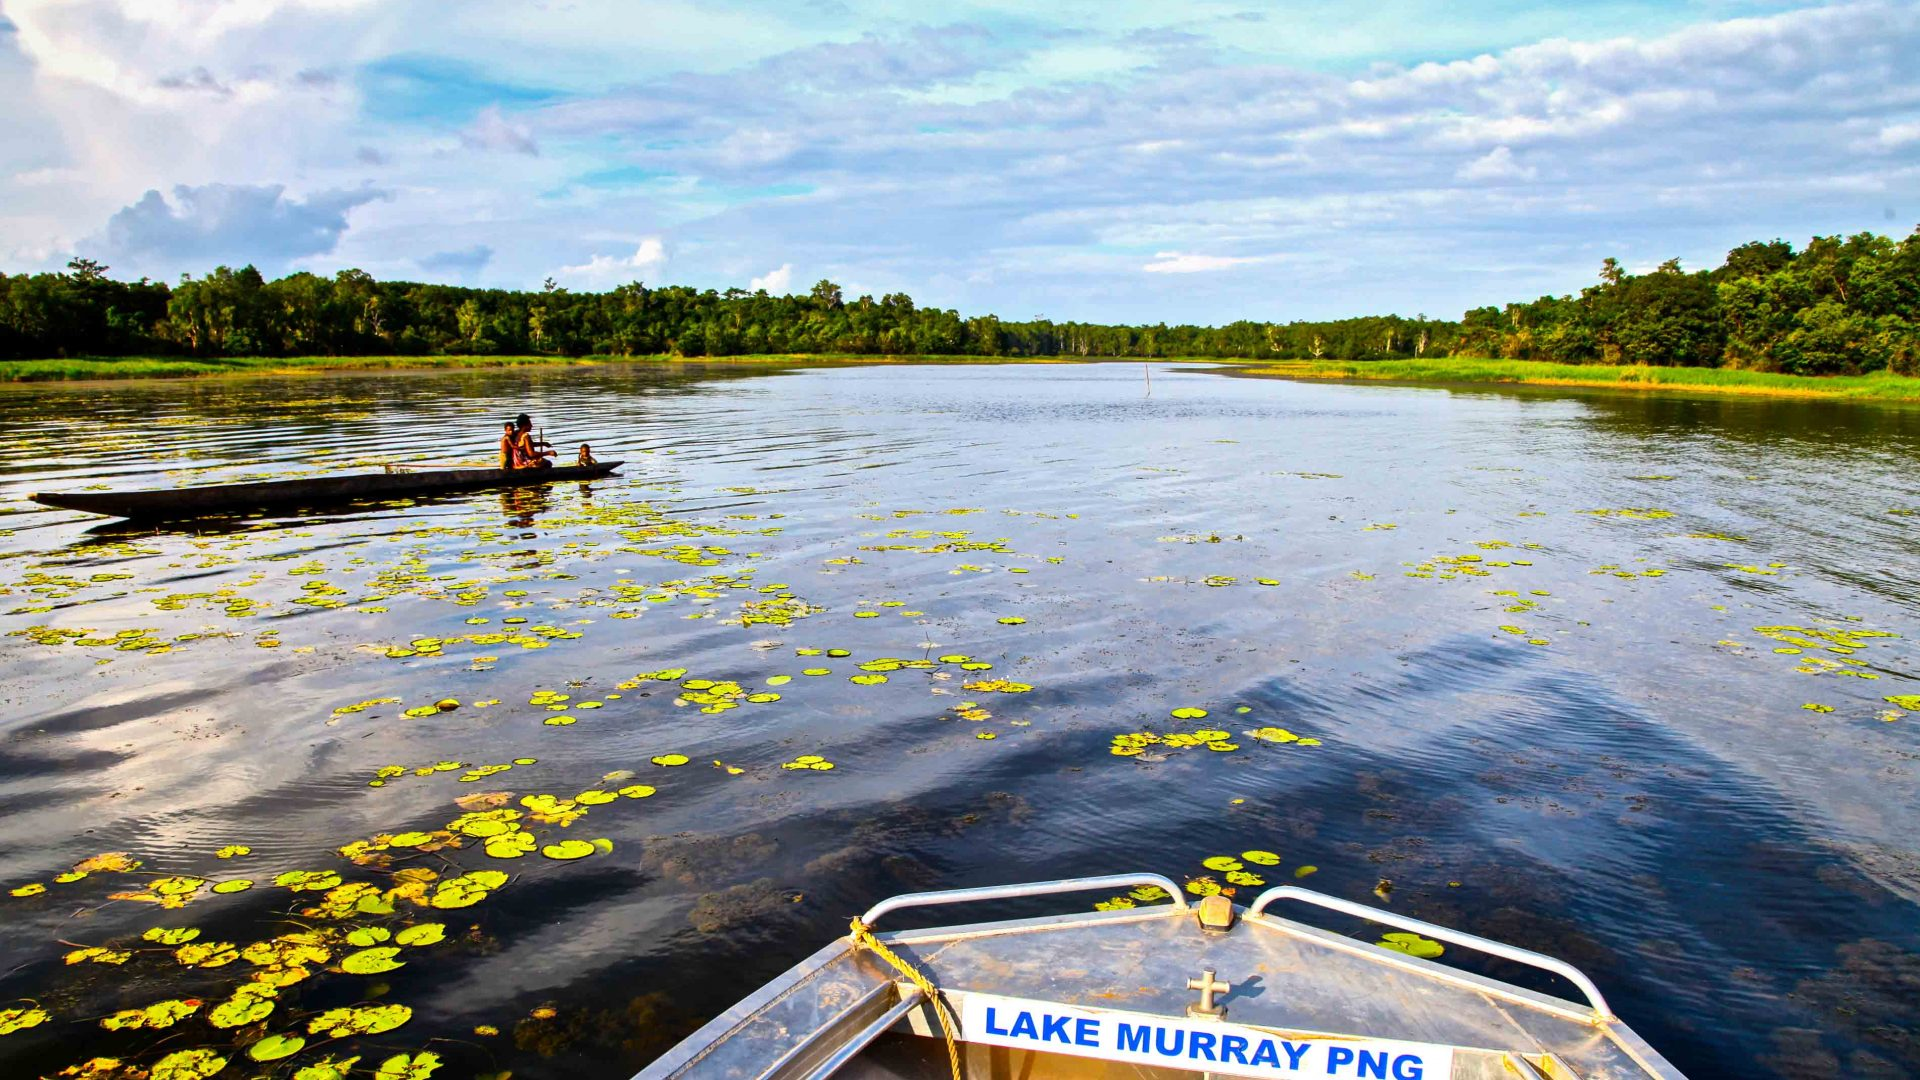 The tip of a small boat indicates the location of this fishing expedition, in Lake Murray, PNG.